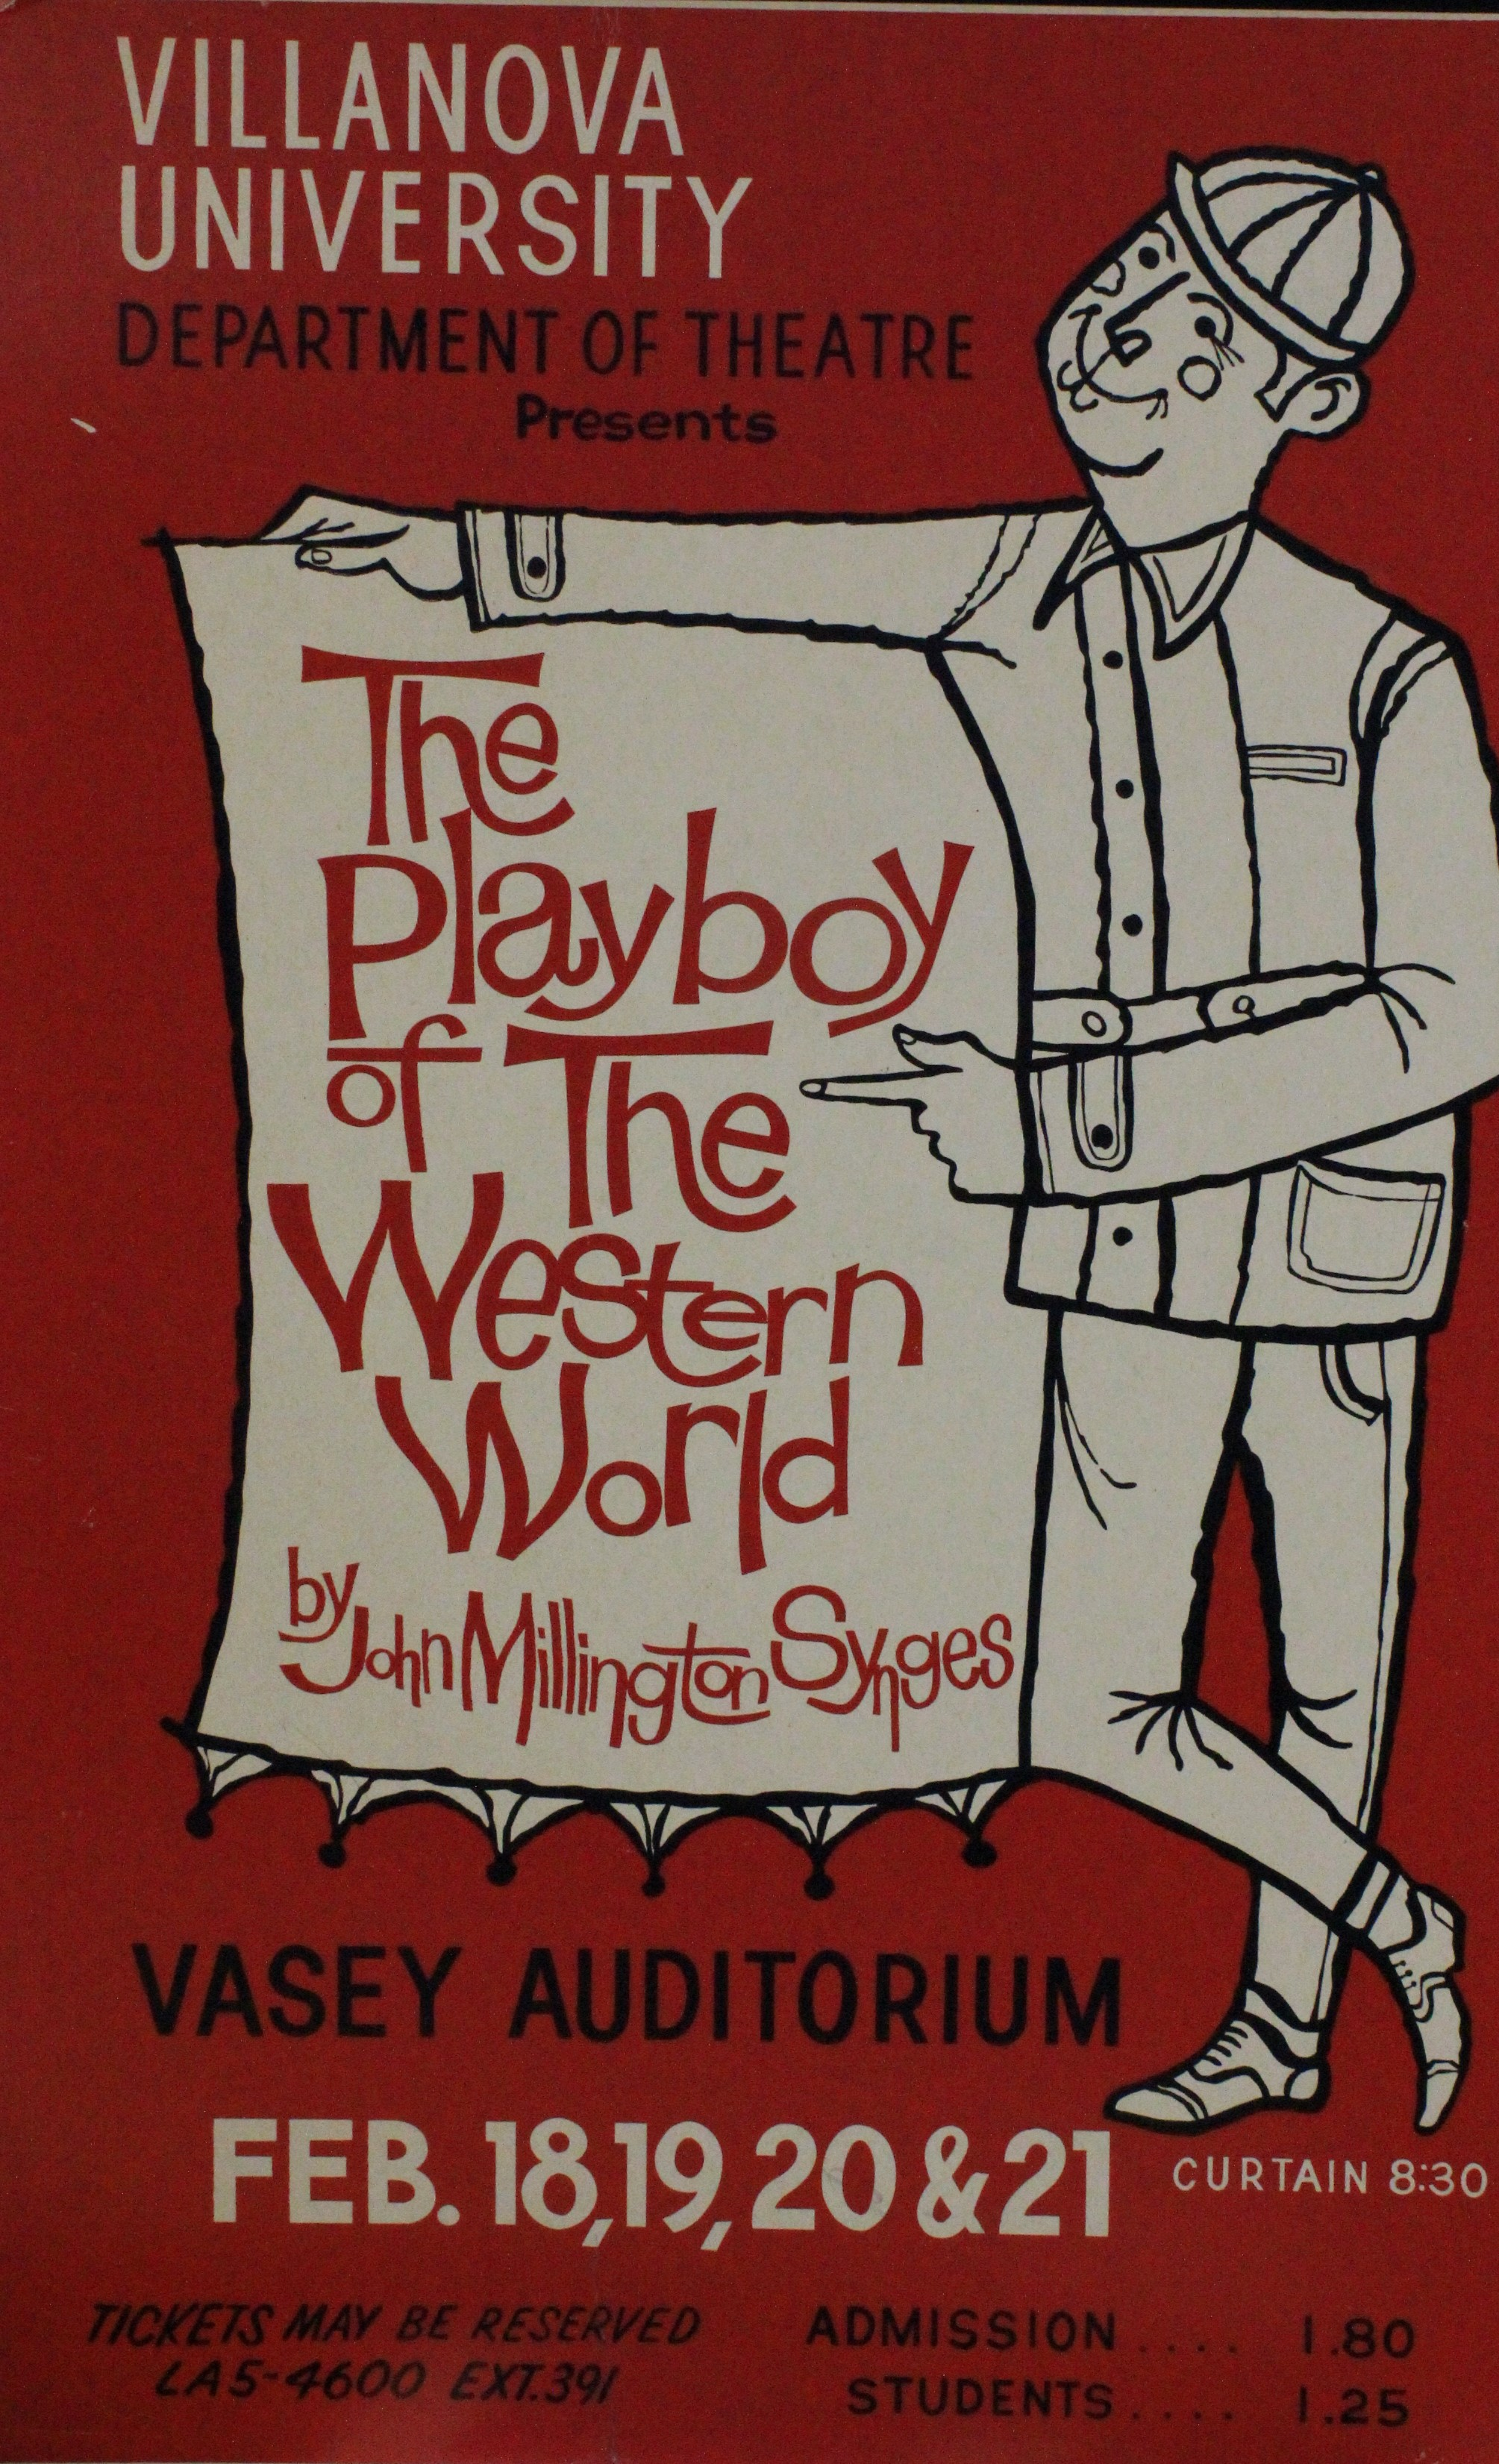 The Playboy of the Western World play bill, 1960 , at Villanova